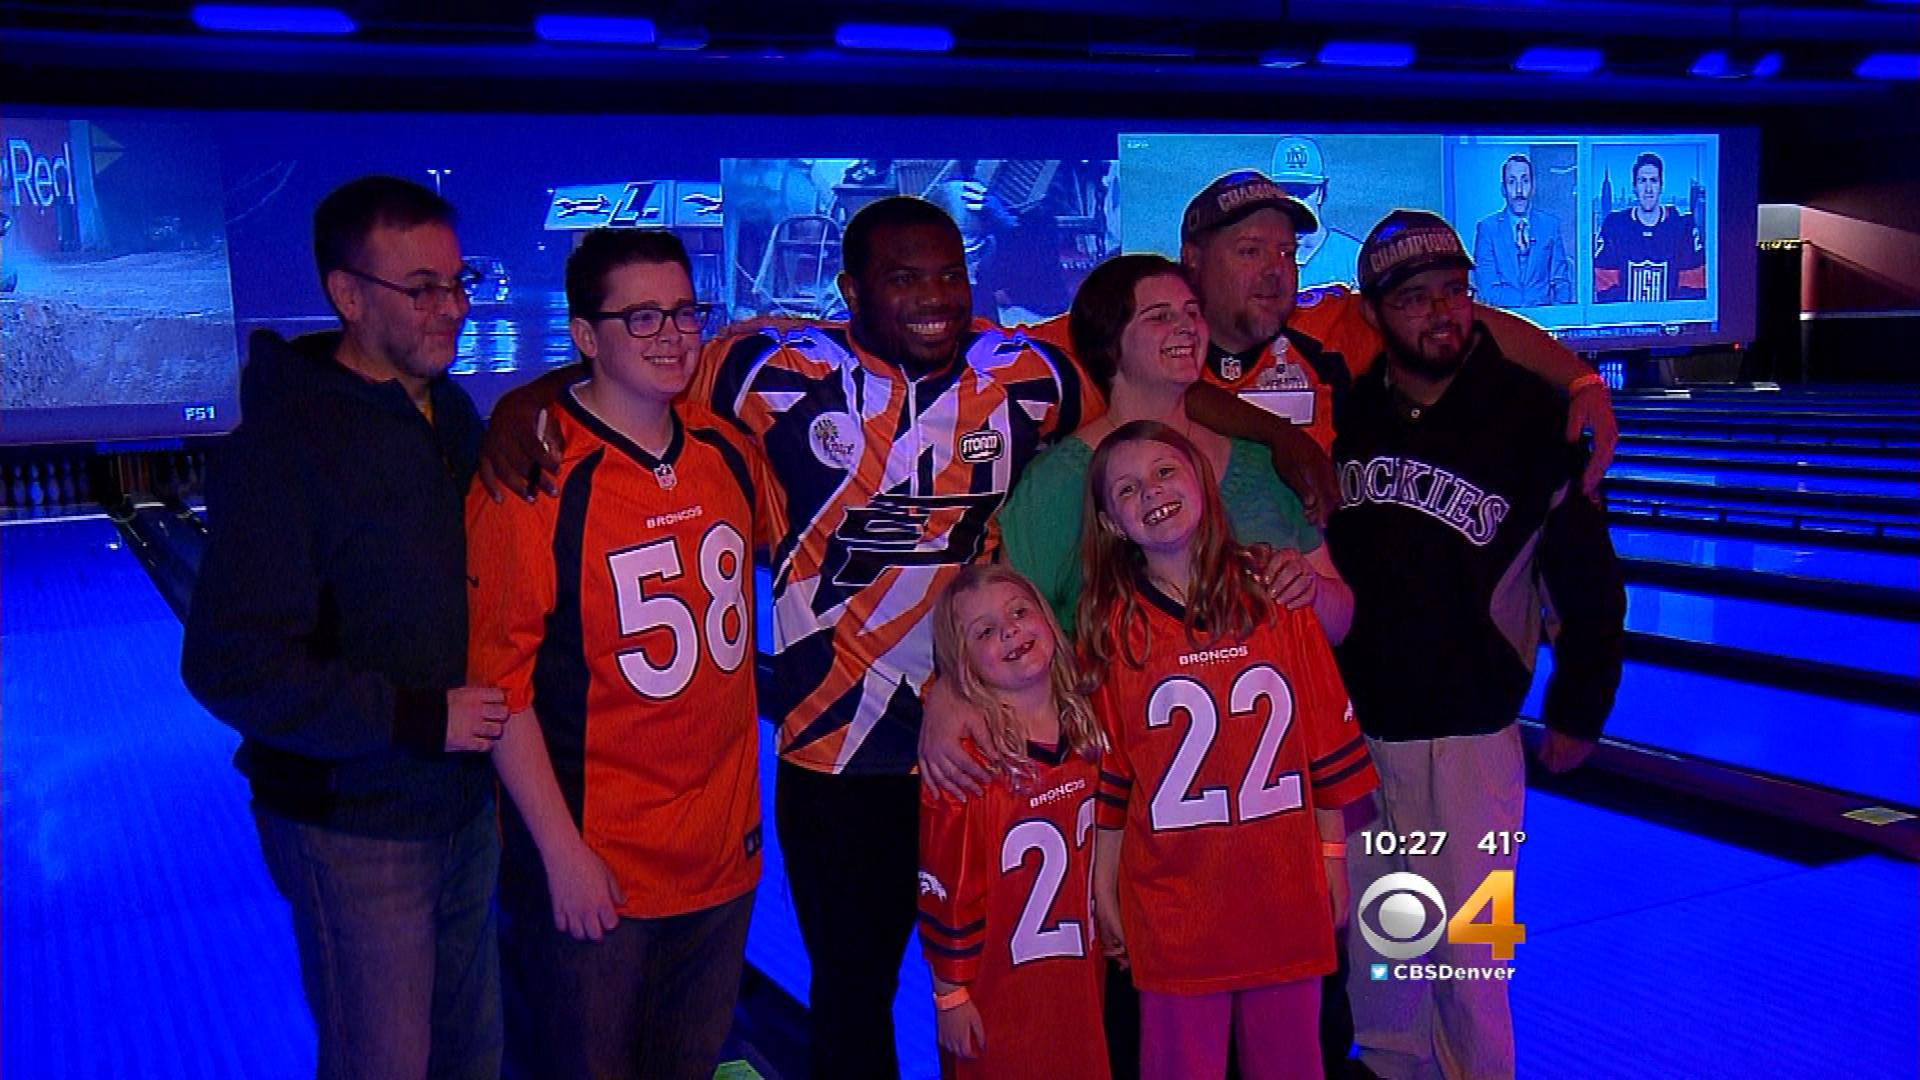 C.J. Anderson with Broncos fans at a bowling charity on May 17 (credit: CBS)